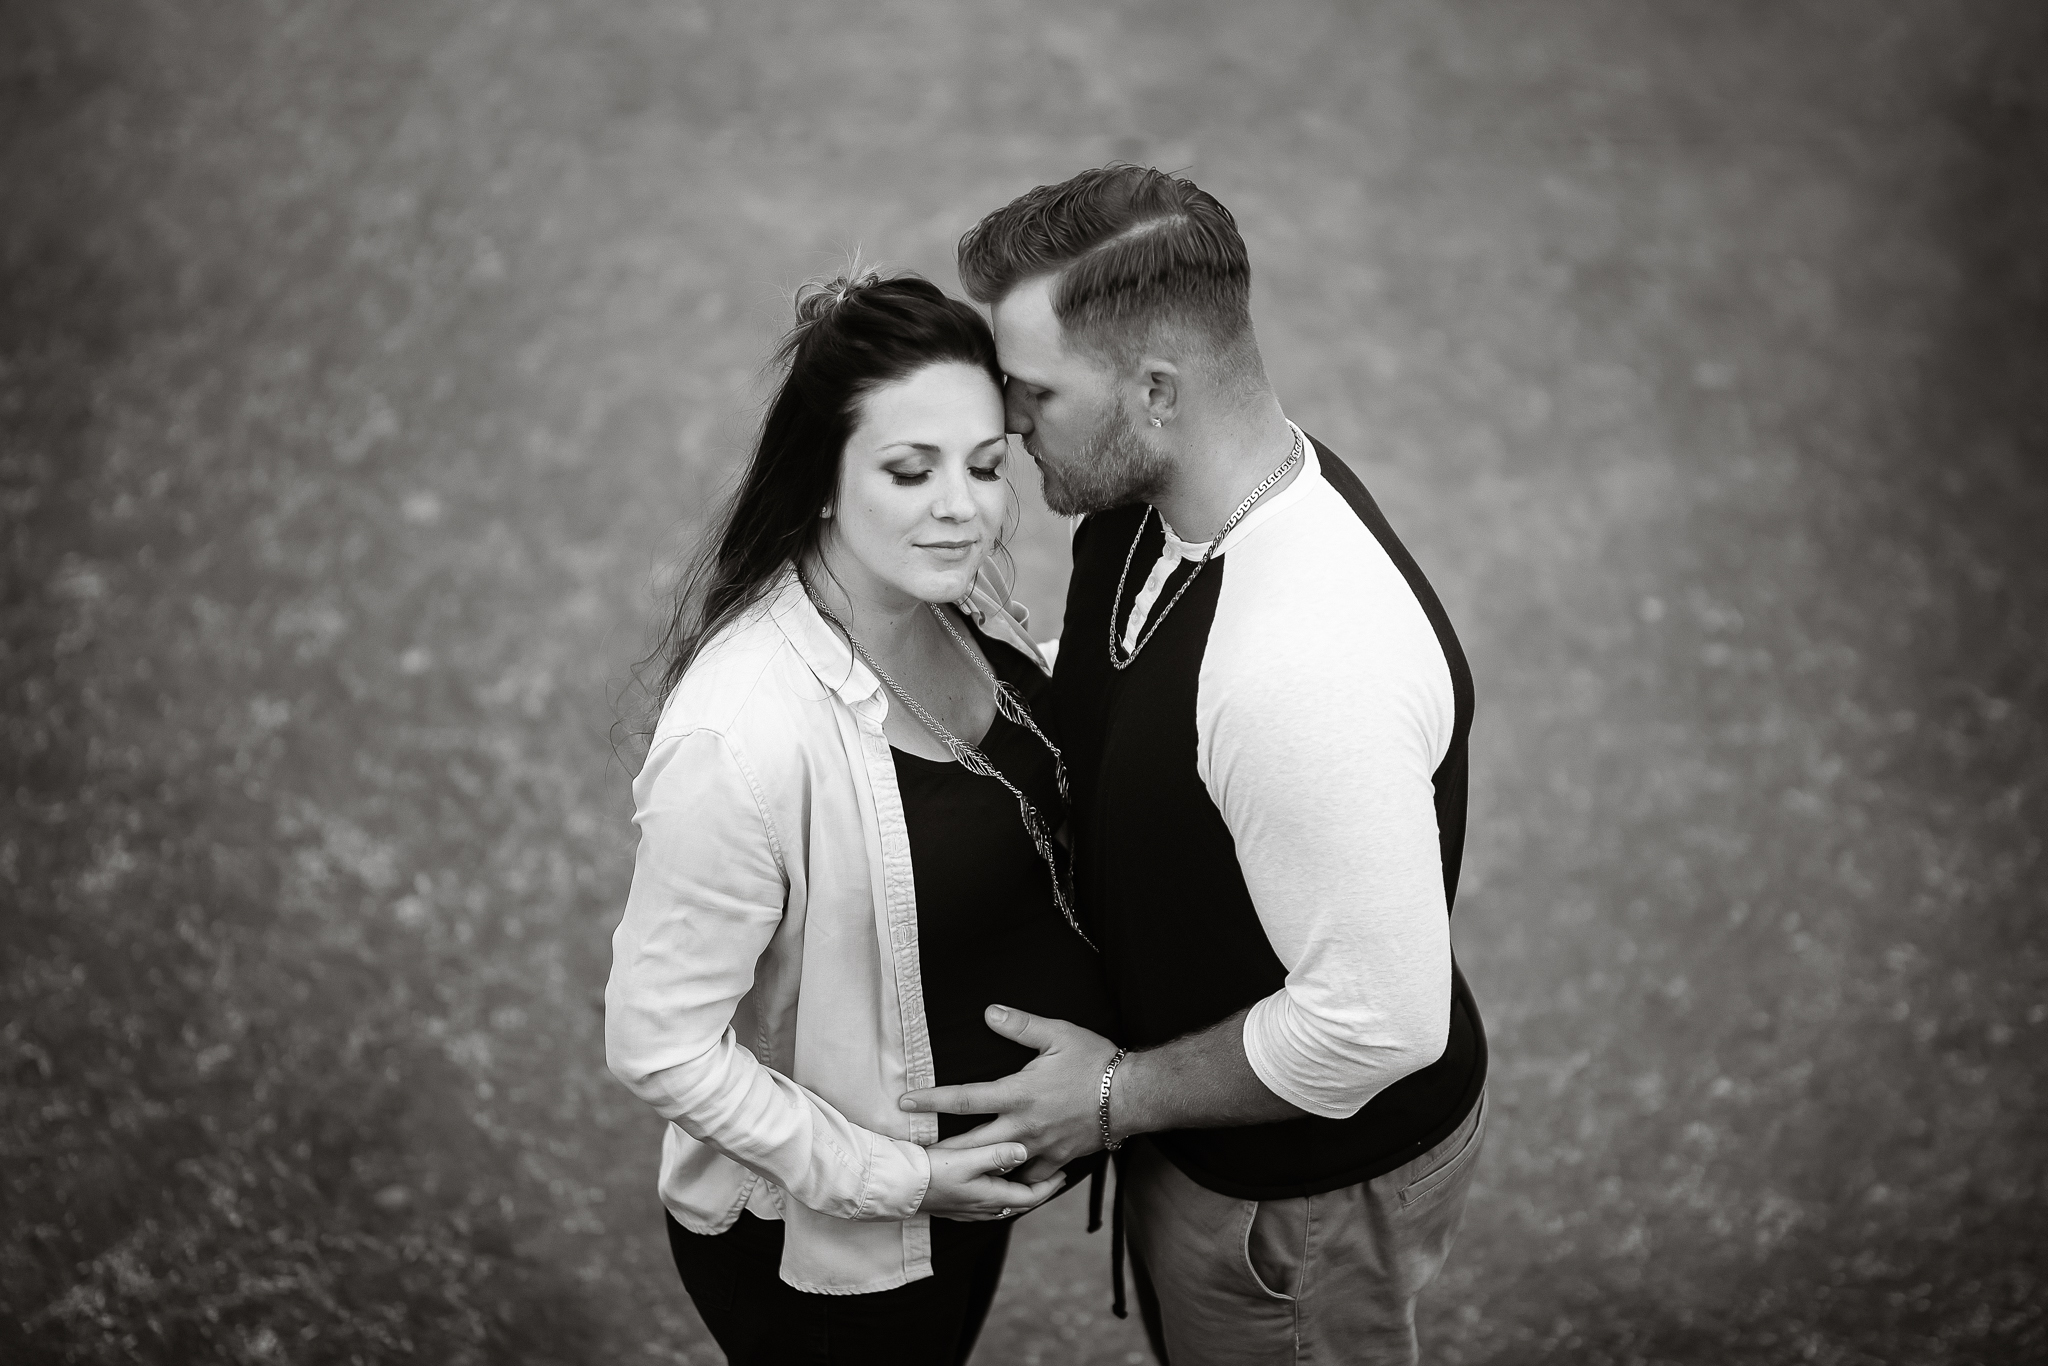 Maternity524NaomiLuciennePhotography052019-Edit-2.jpg